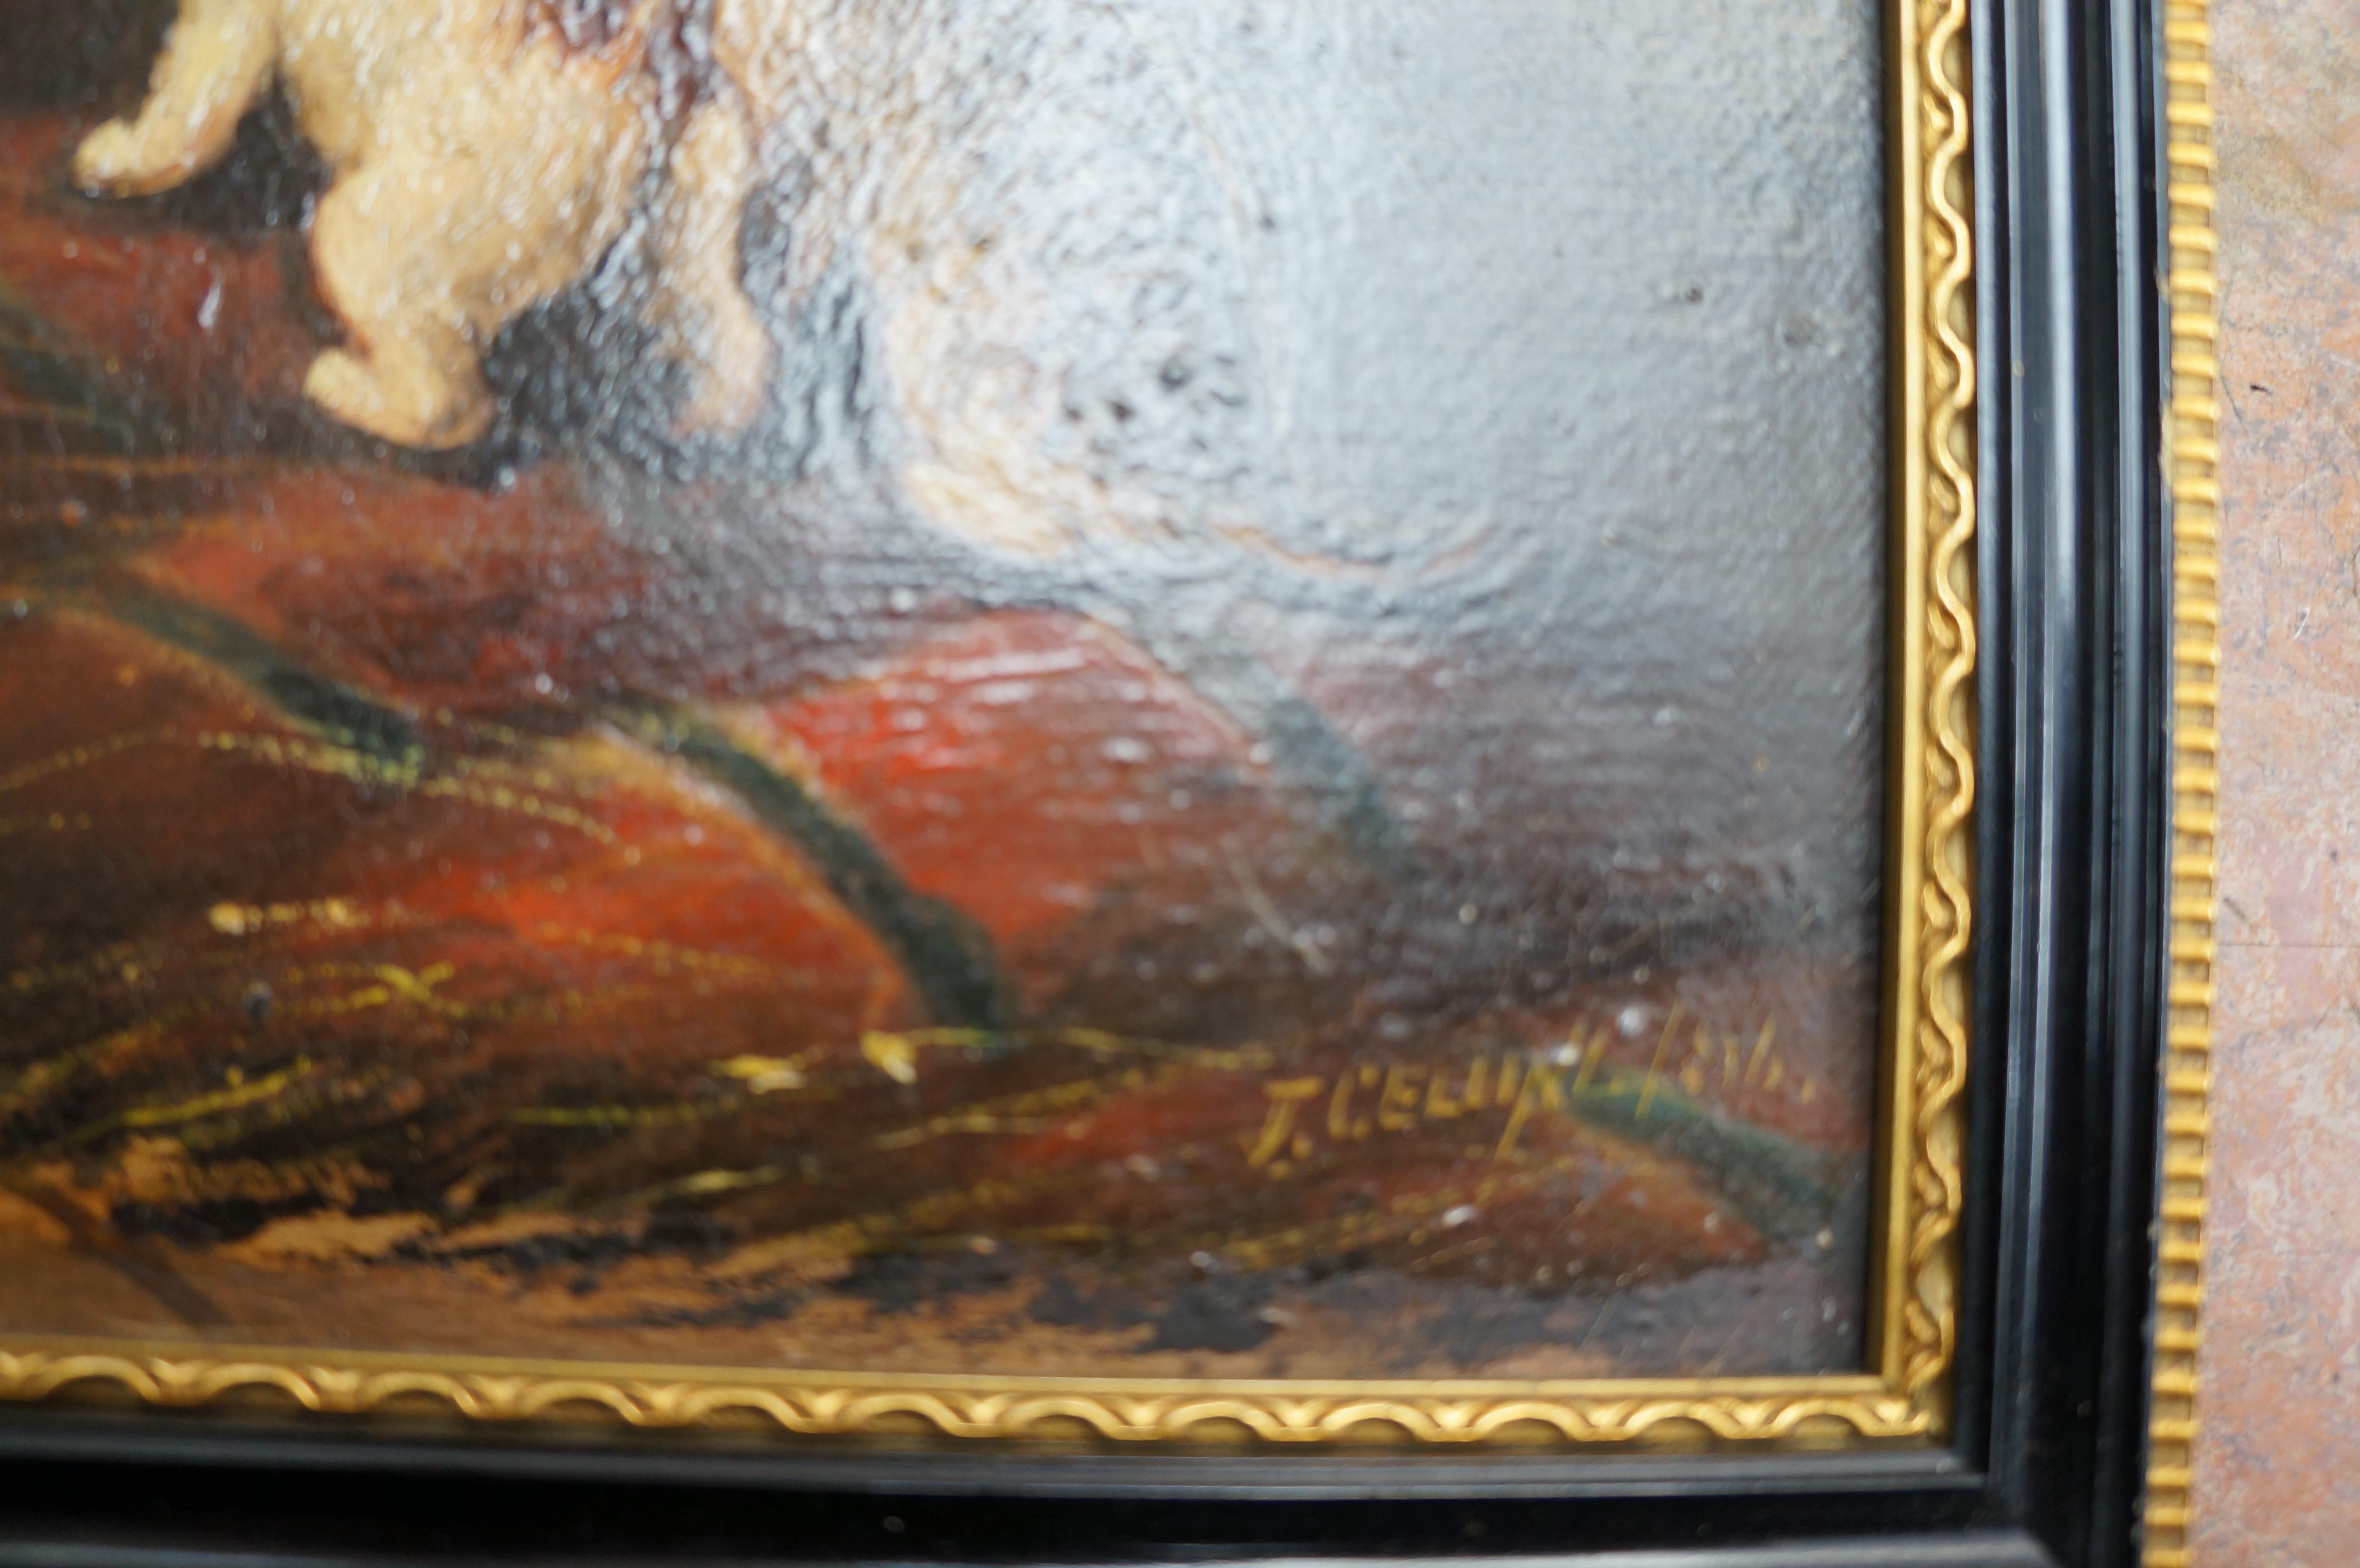 Oil on Board Mother and Kitten Painting (Indistinc - Image 2 of 2